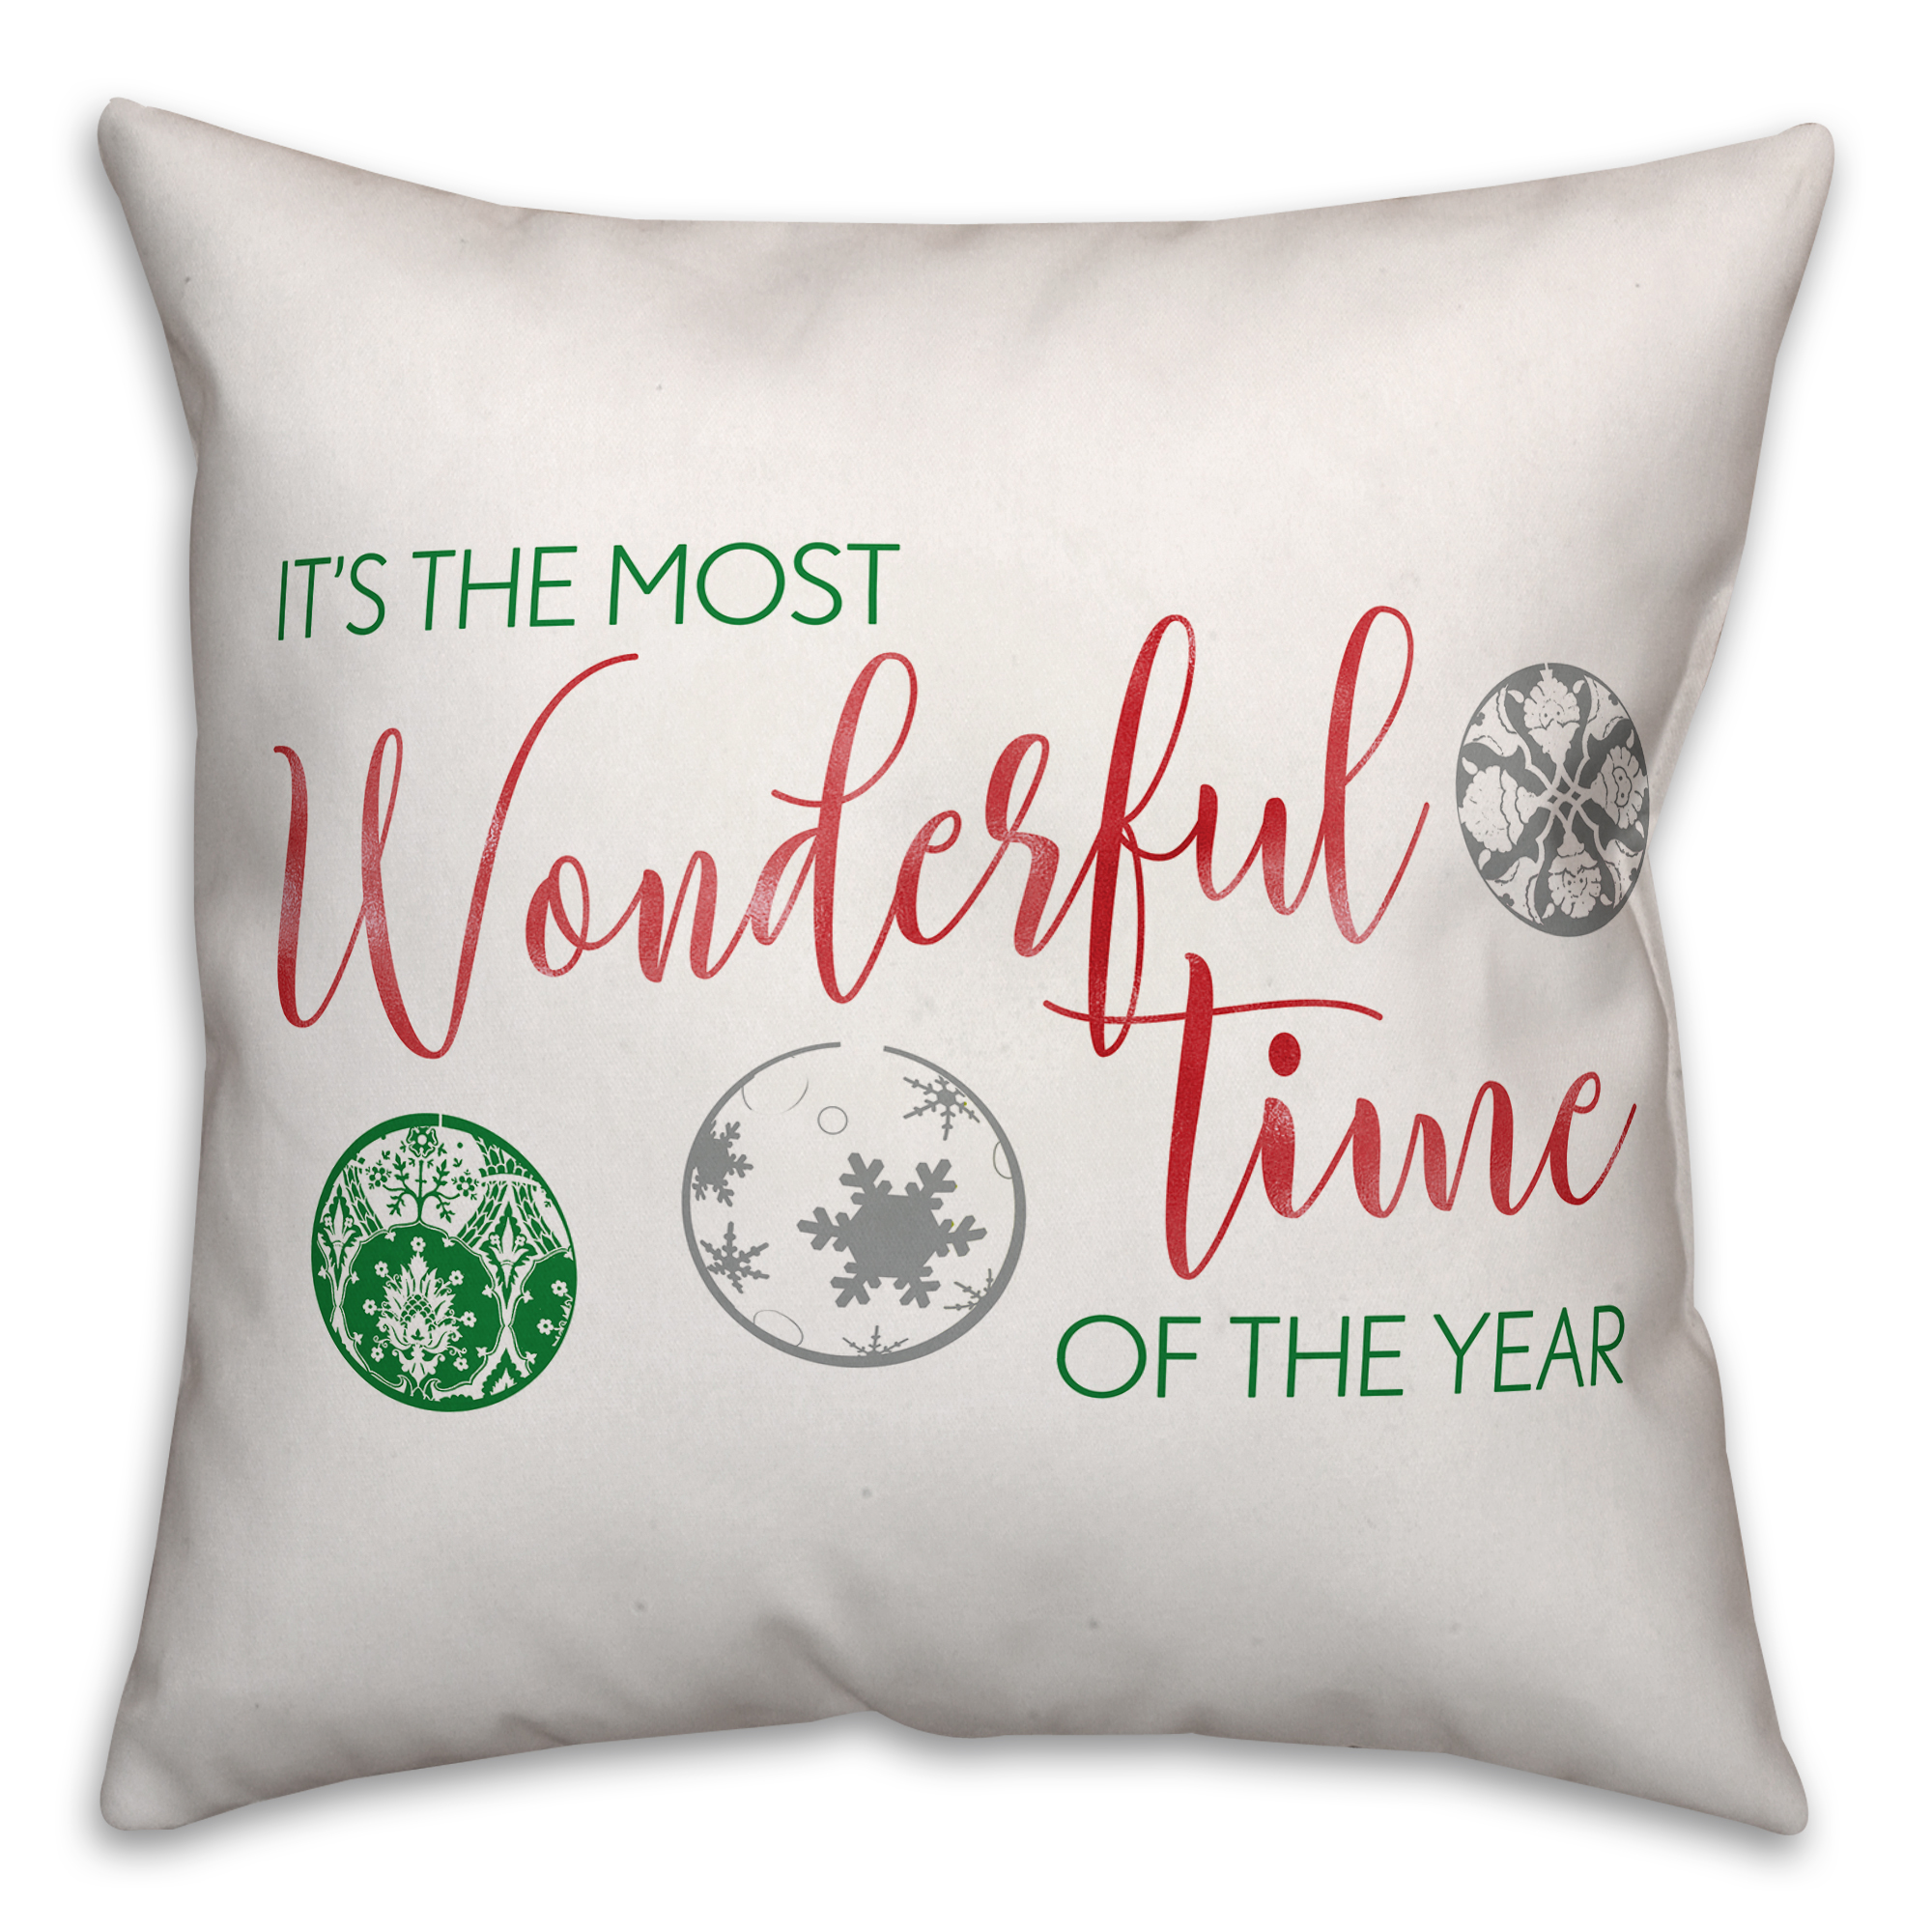 It's the Most Wonderful Time of the Year 16x16 Spun Poly Pillow Cover